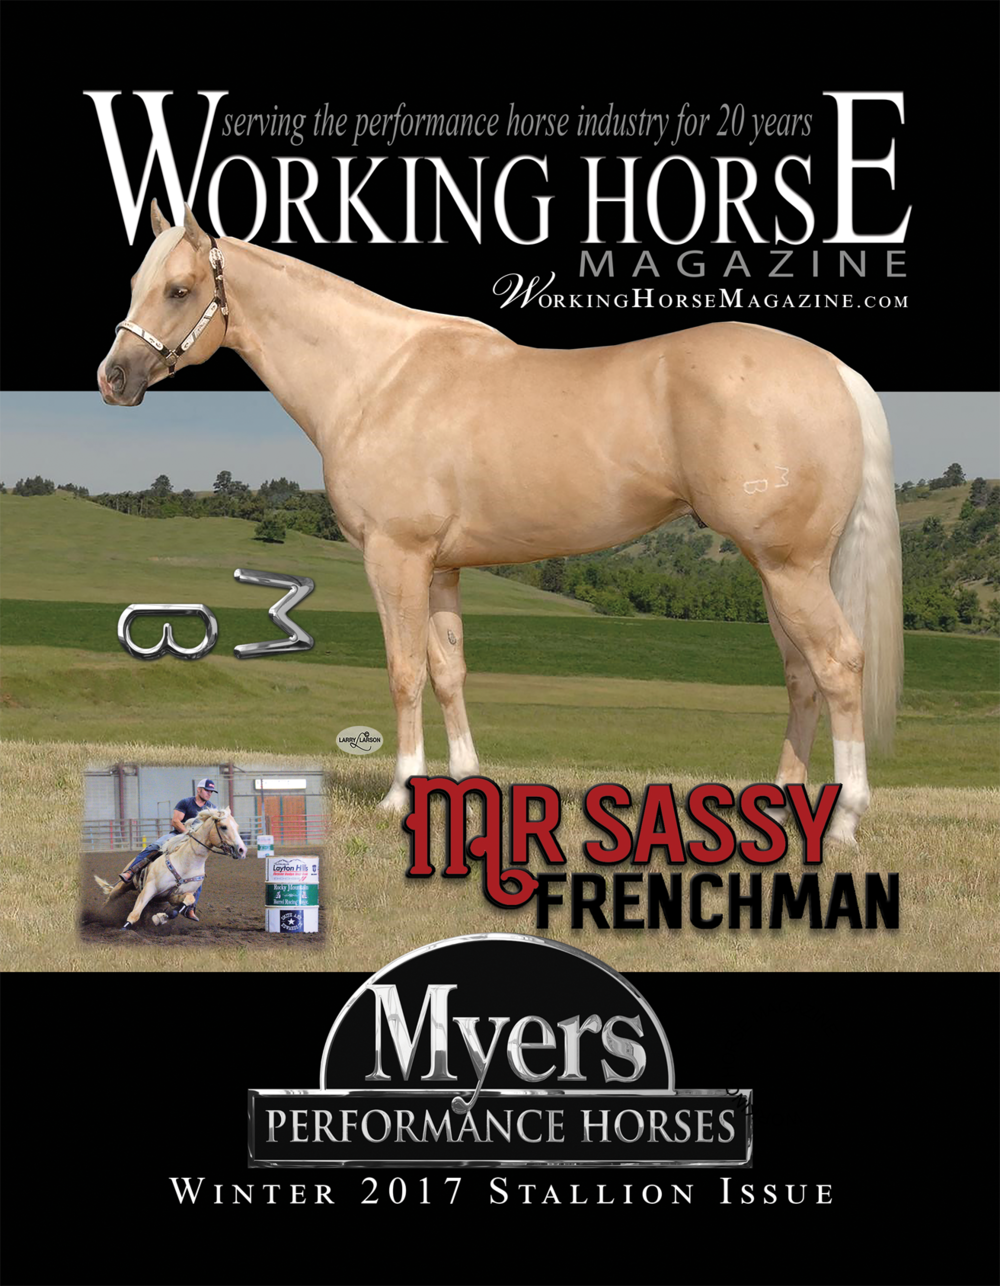 Cover 2017 Stallion Issue